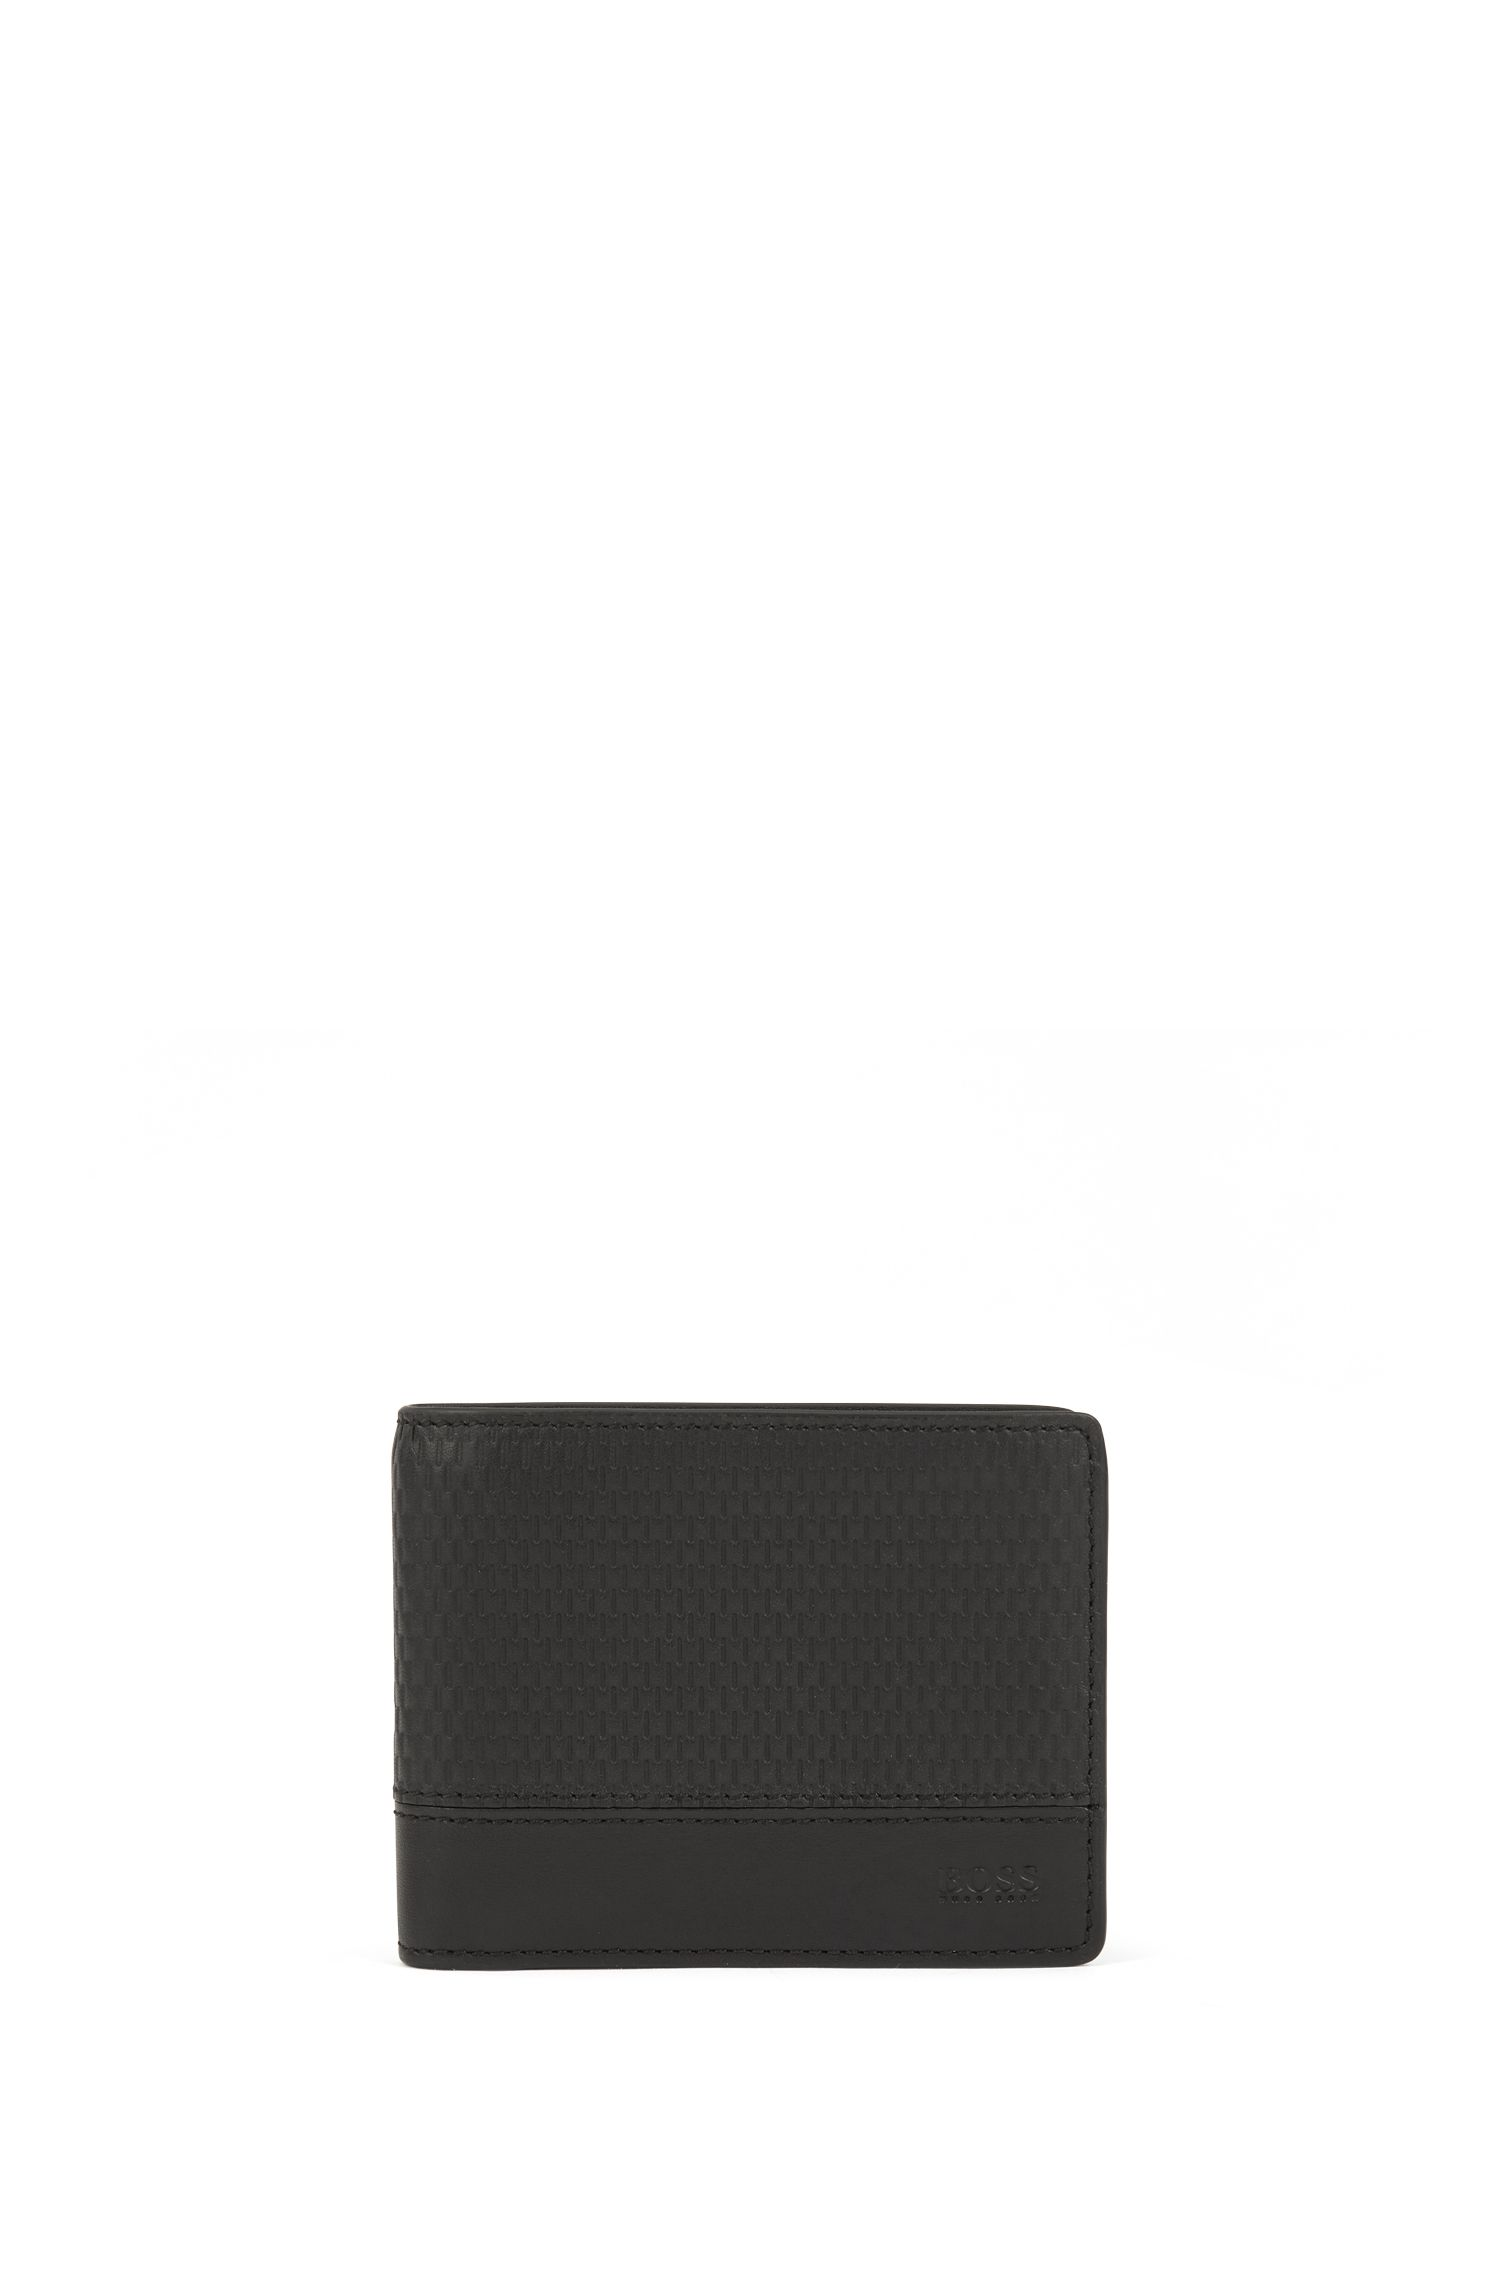 Billfold wallet in Italian leather with perforated detailing, Black